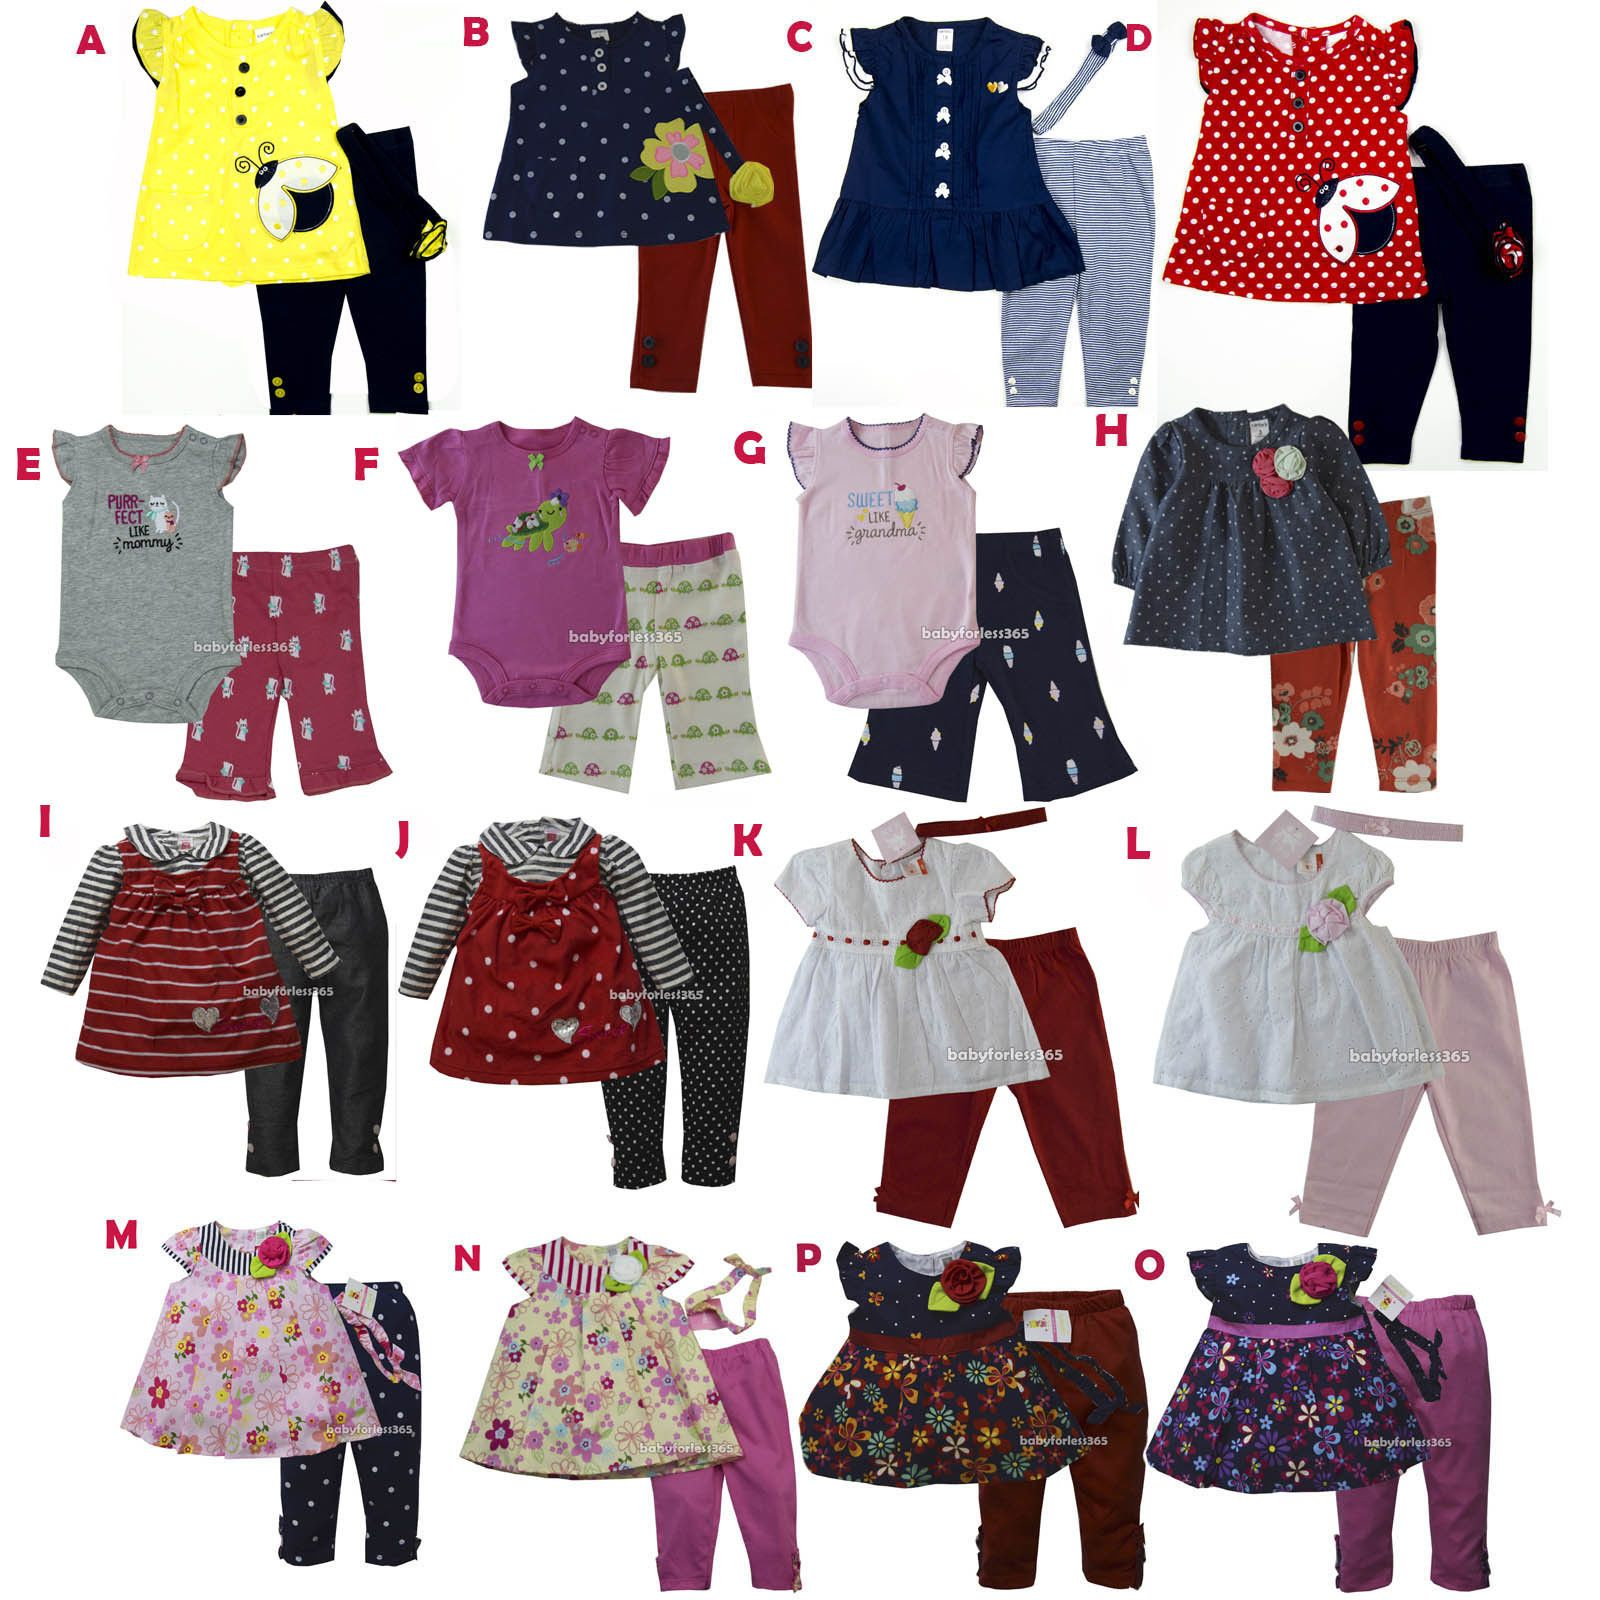 8a4567d60680 Girls Clothing Newborn-5T 147192  New Carter S Baby Girls Outfit ...